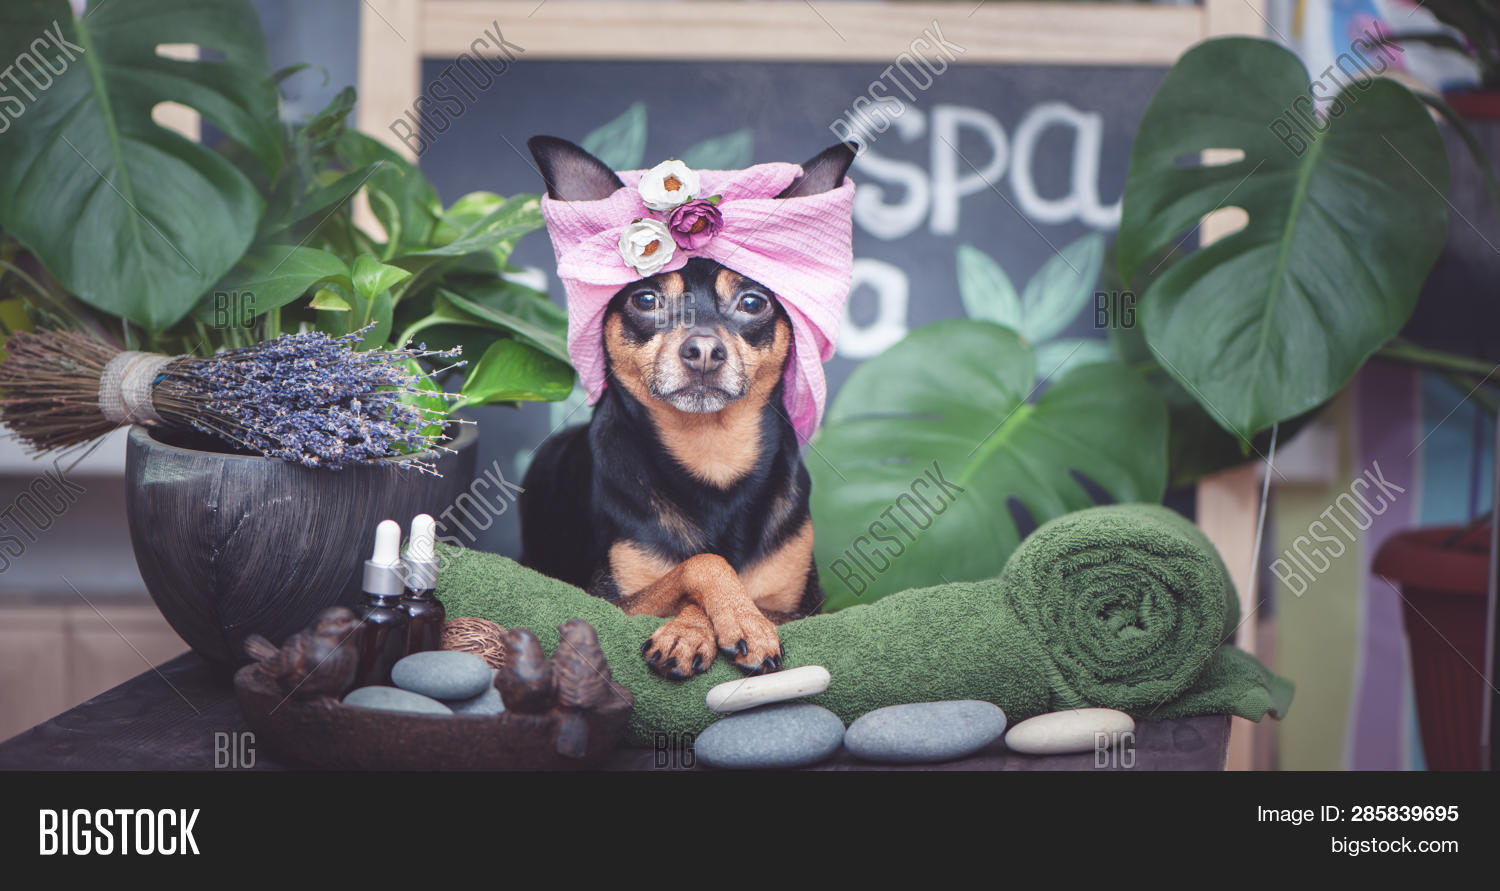 animal,background,bath,bathrobe,beauty,body,care,center,cosmetic,cucumber,cute,dog,facial,funny,grooming,health,healthy,jack,lifestyle,luxury,mask,massage,monstera,pet,puppy,relax,relaxing,rest,russell,salon,sauna,shower,spa,therapy,towel,treatment,wash,wellness